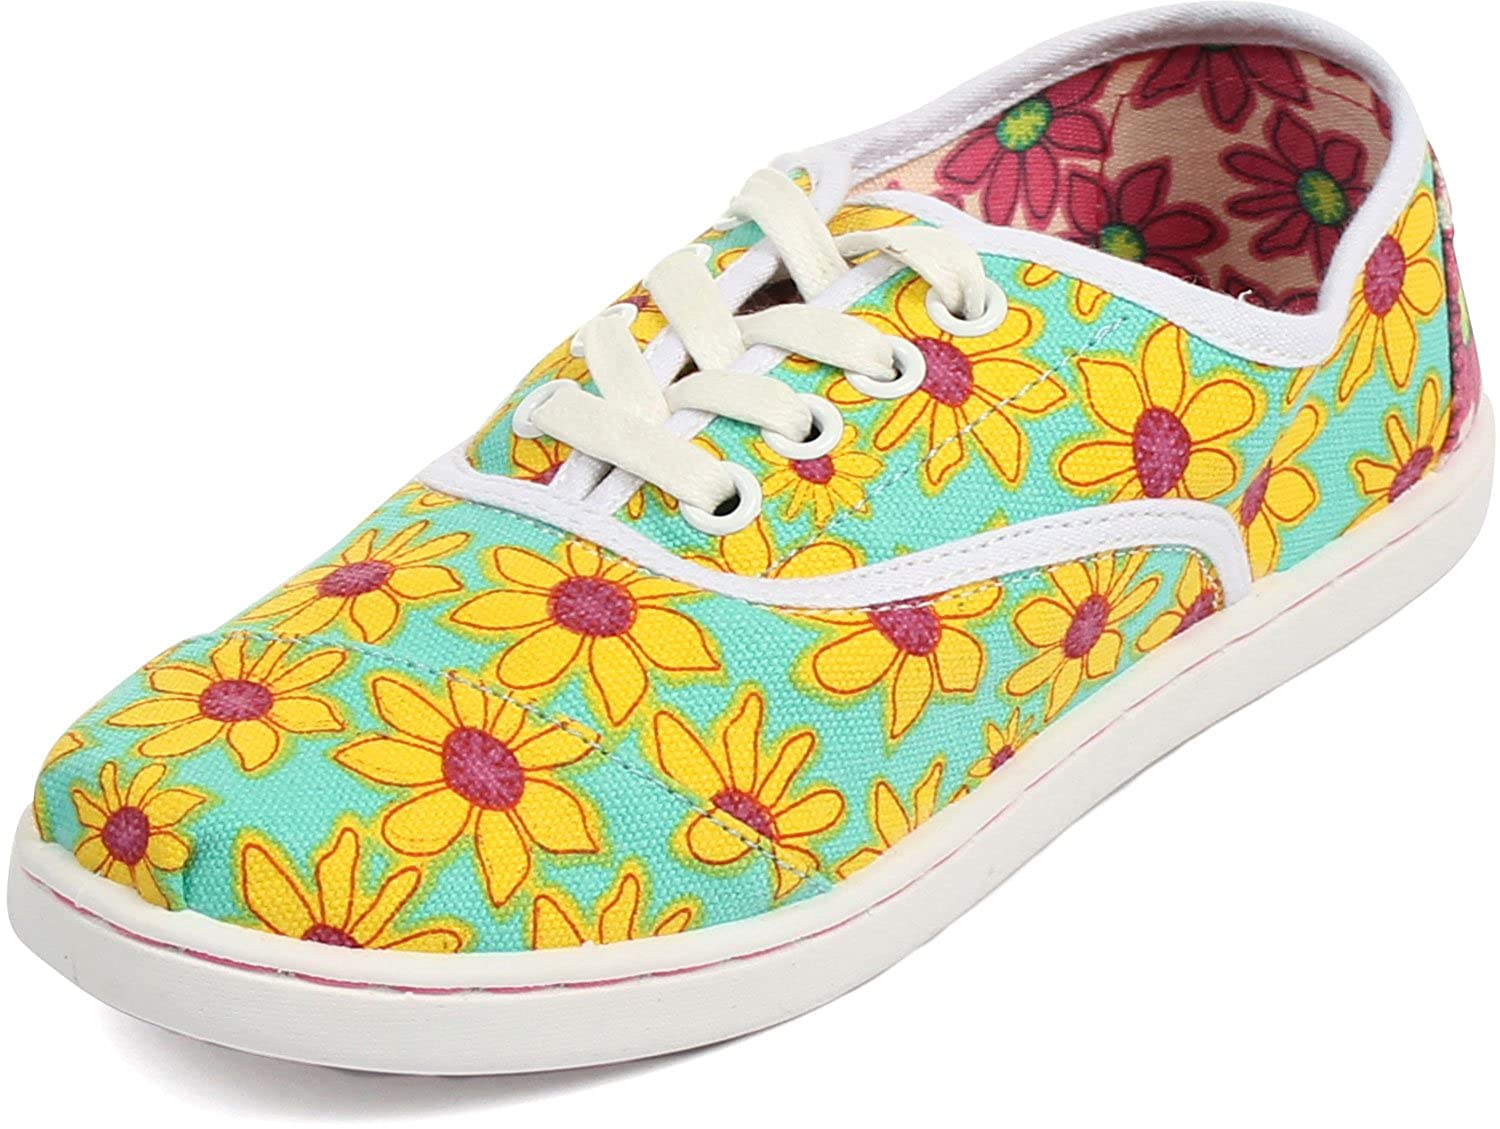 Amazon.com: Toms - Unisex-Child Cordones Shoes In Yellow Daisy, Size: 1 M US Little Kid, Color: Yellow Daisy: Shoes